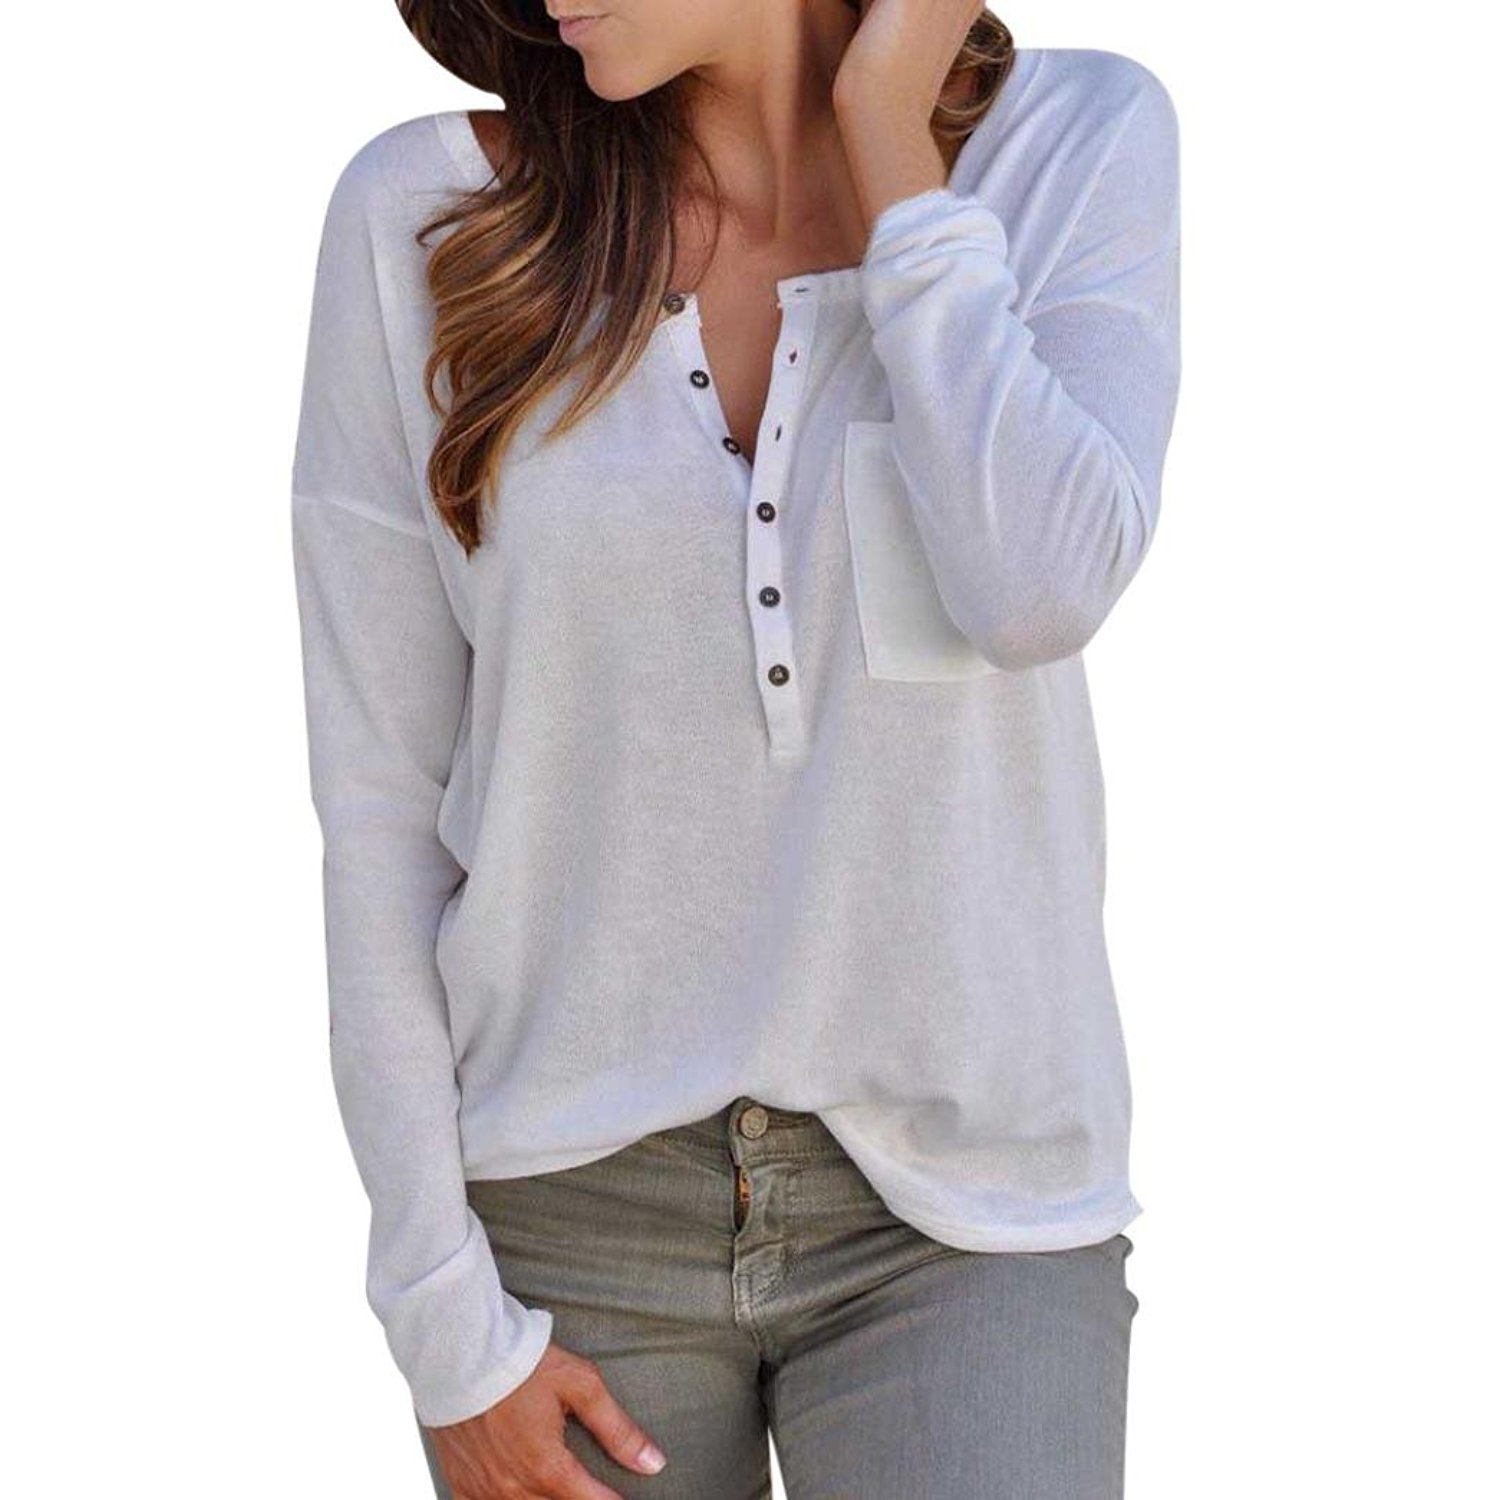 Autumn&Winter Clothing,Fulltime(TM) Long Sleeve Pullover Ladies Loose Shirt YHL70914183